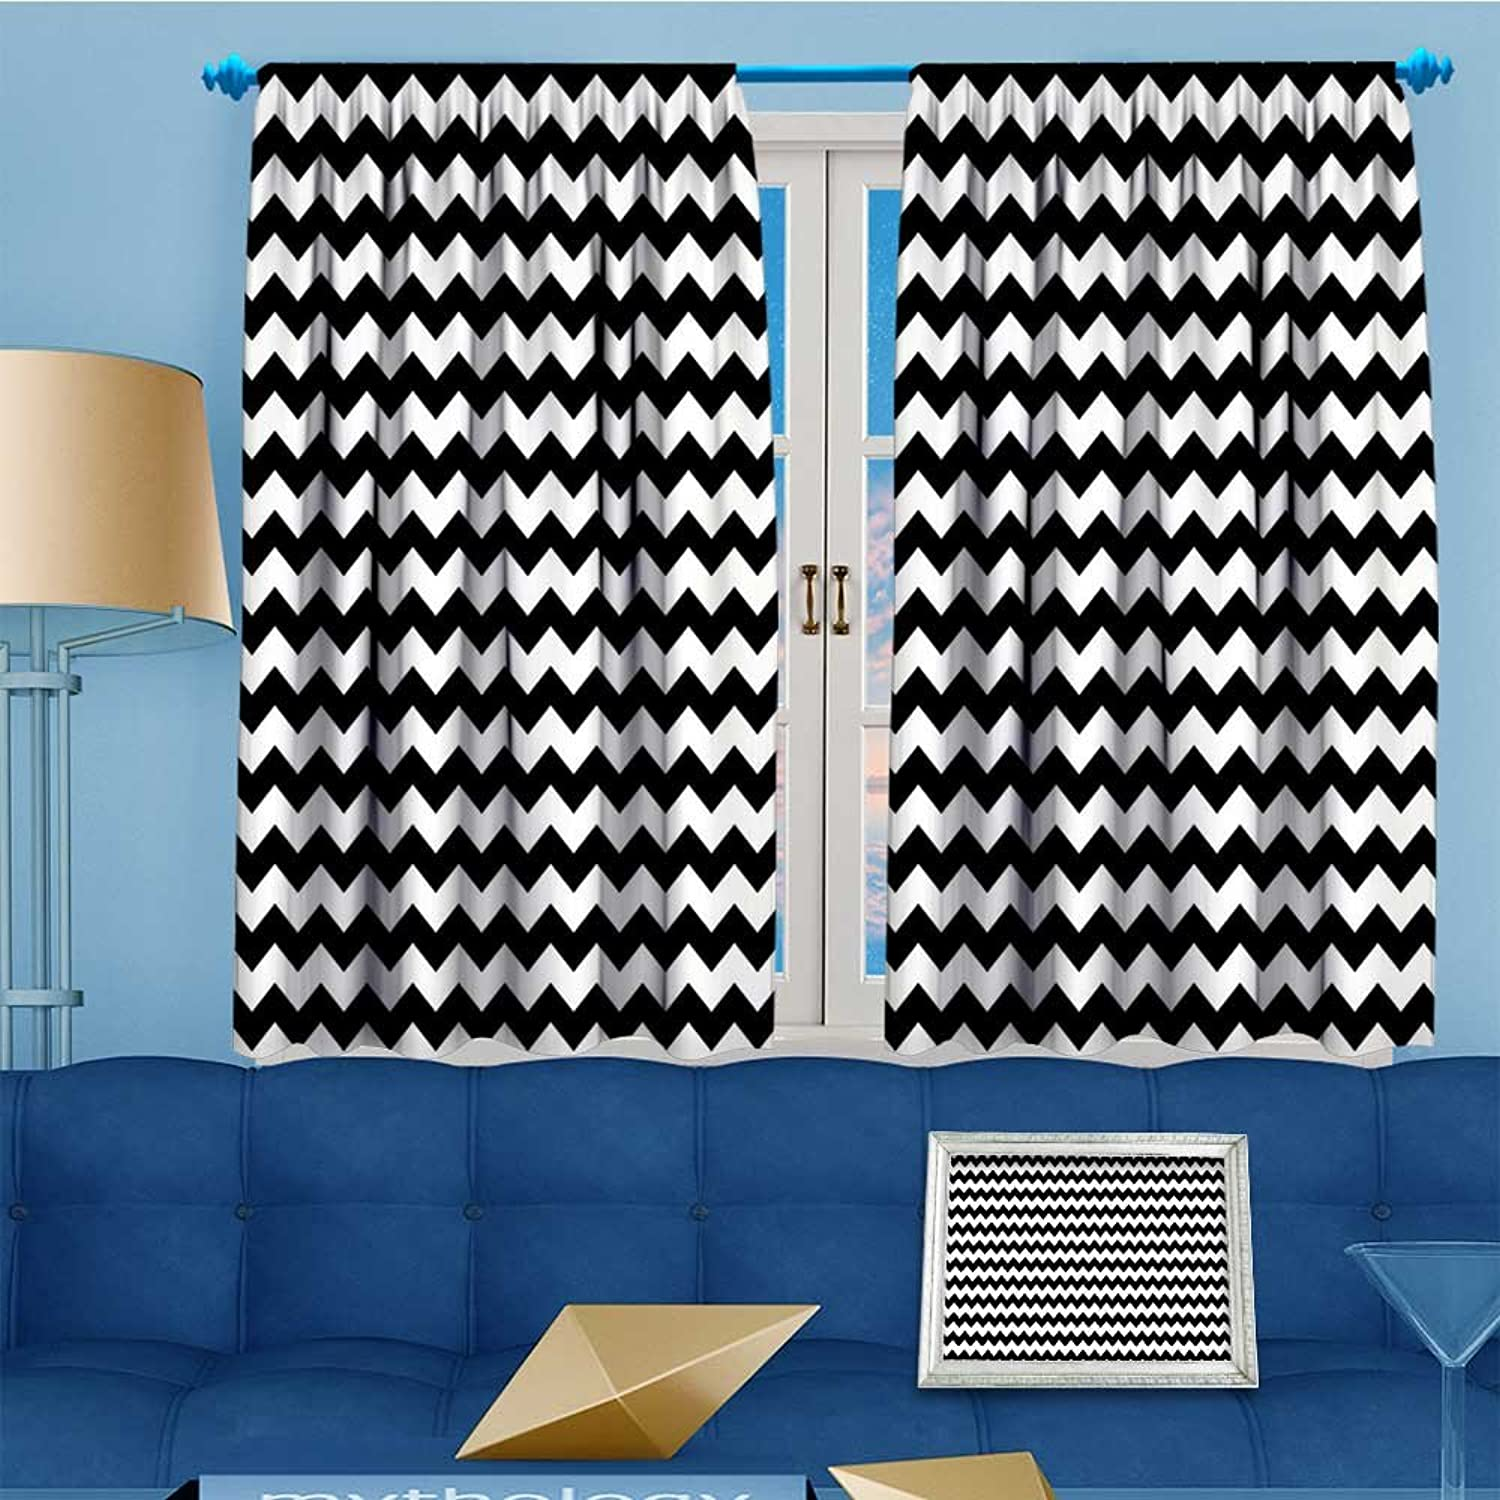 Thermal Insulated Blackout Window Room s in Sharp Arrow Inspired ClassicTile Monochrome Black White Top Extra Long Curtains Set of 2 Panels 55  W x 45  L